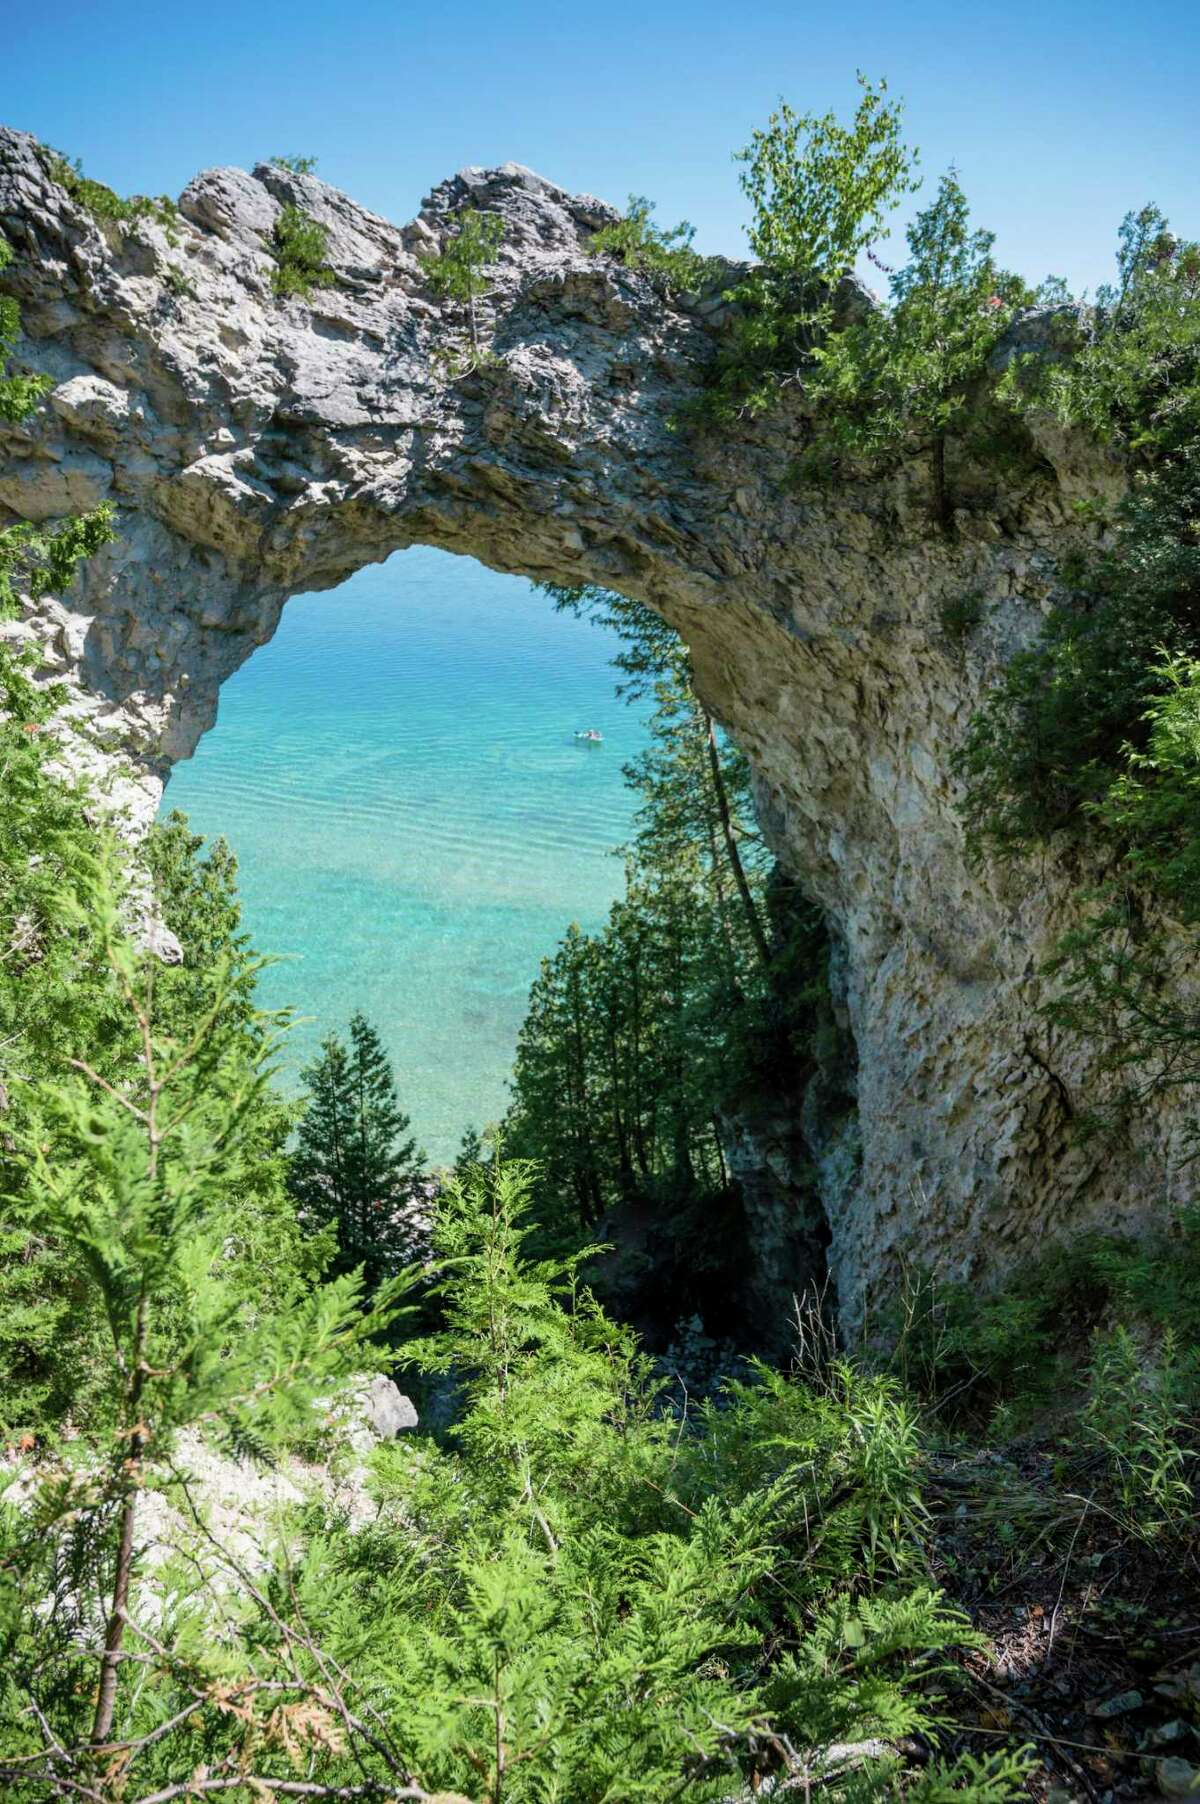 Aman's body was found at the base of Arch Rock by a passerby on Mackinac Island, and authorities say he likely fell from the top of the unique natural limestone arch. (Courtesy Photo/Getty Images)